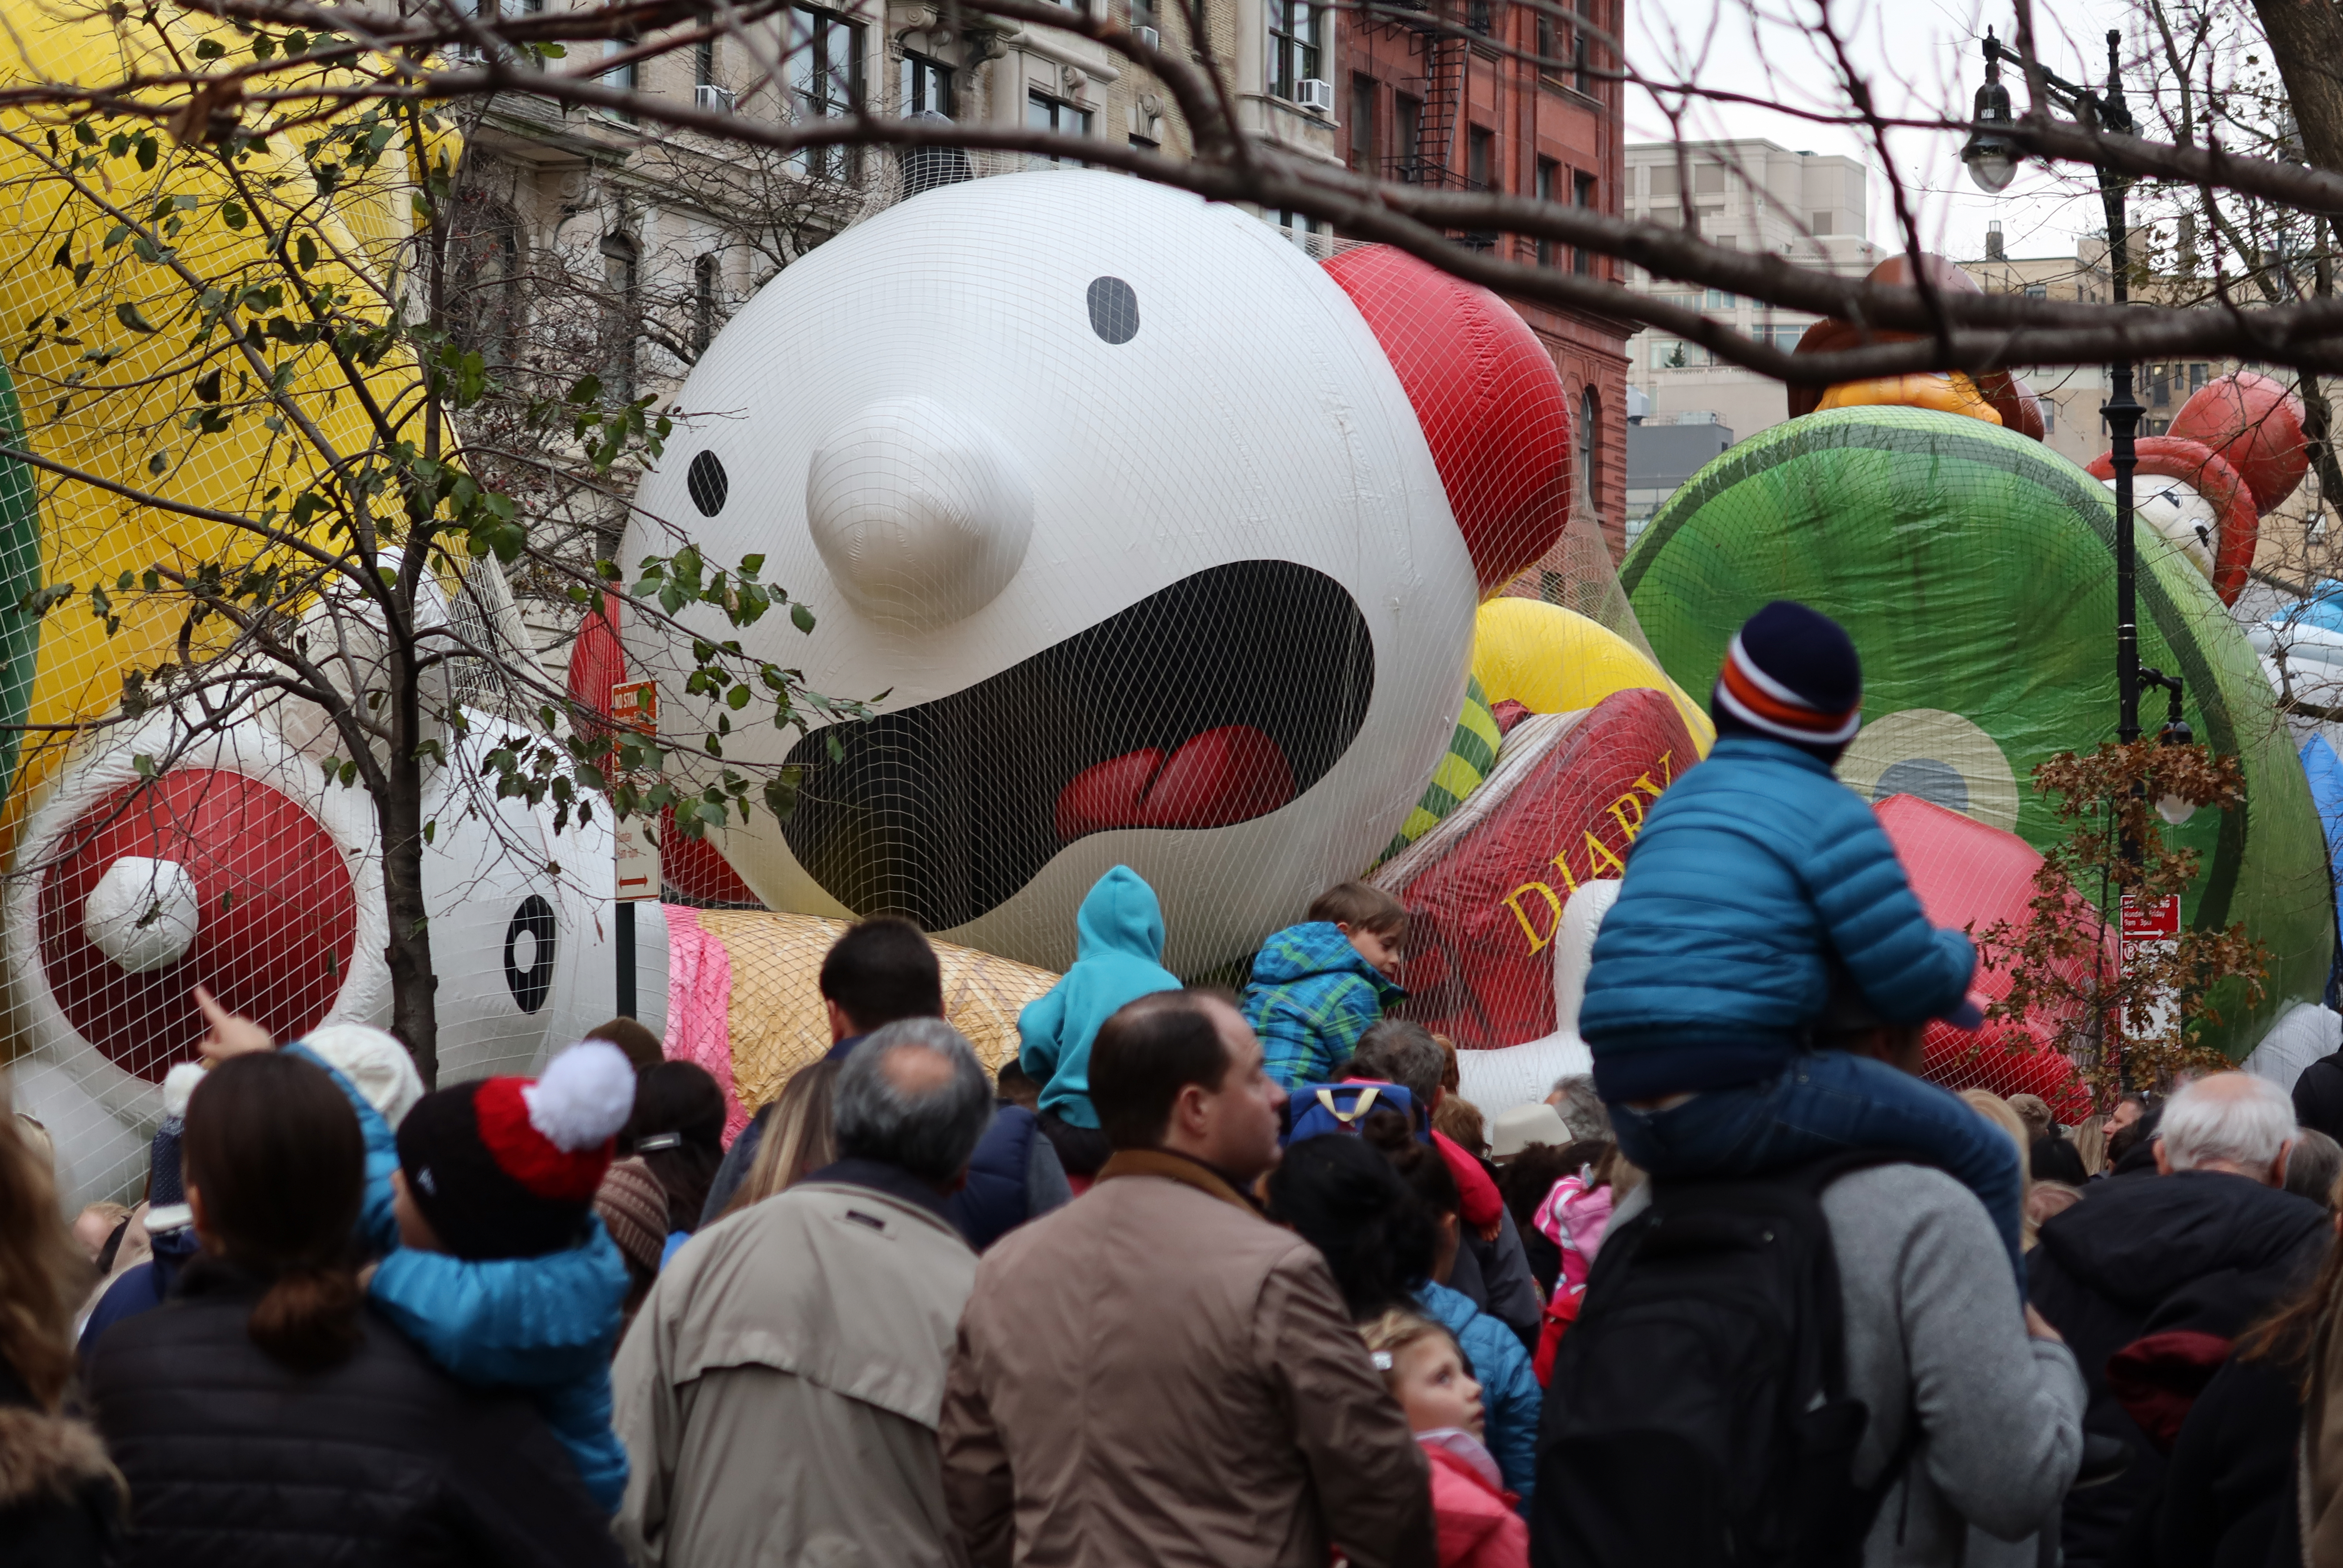 People walk past a  Diary of a Wimpy Kid  balloon after it was inflated for the annual Macy's Thanksgiving Day Parade on Nov/ 27, 2019 in New York City.